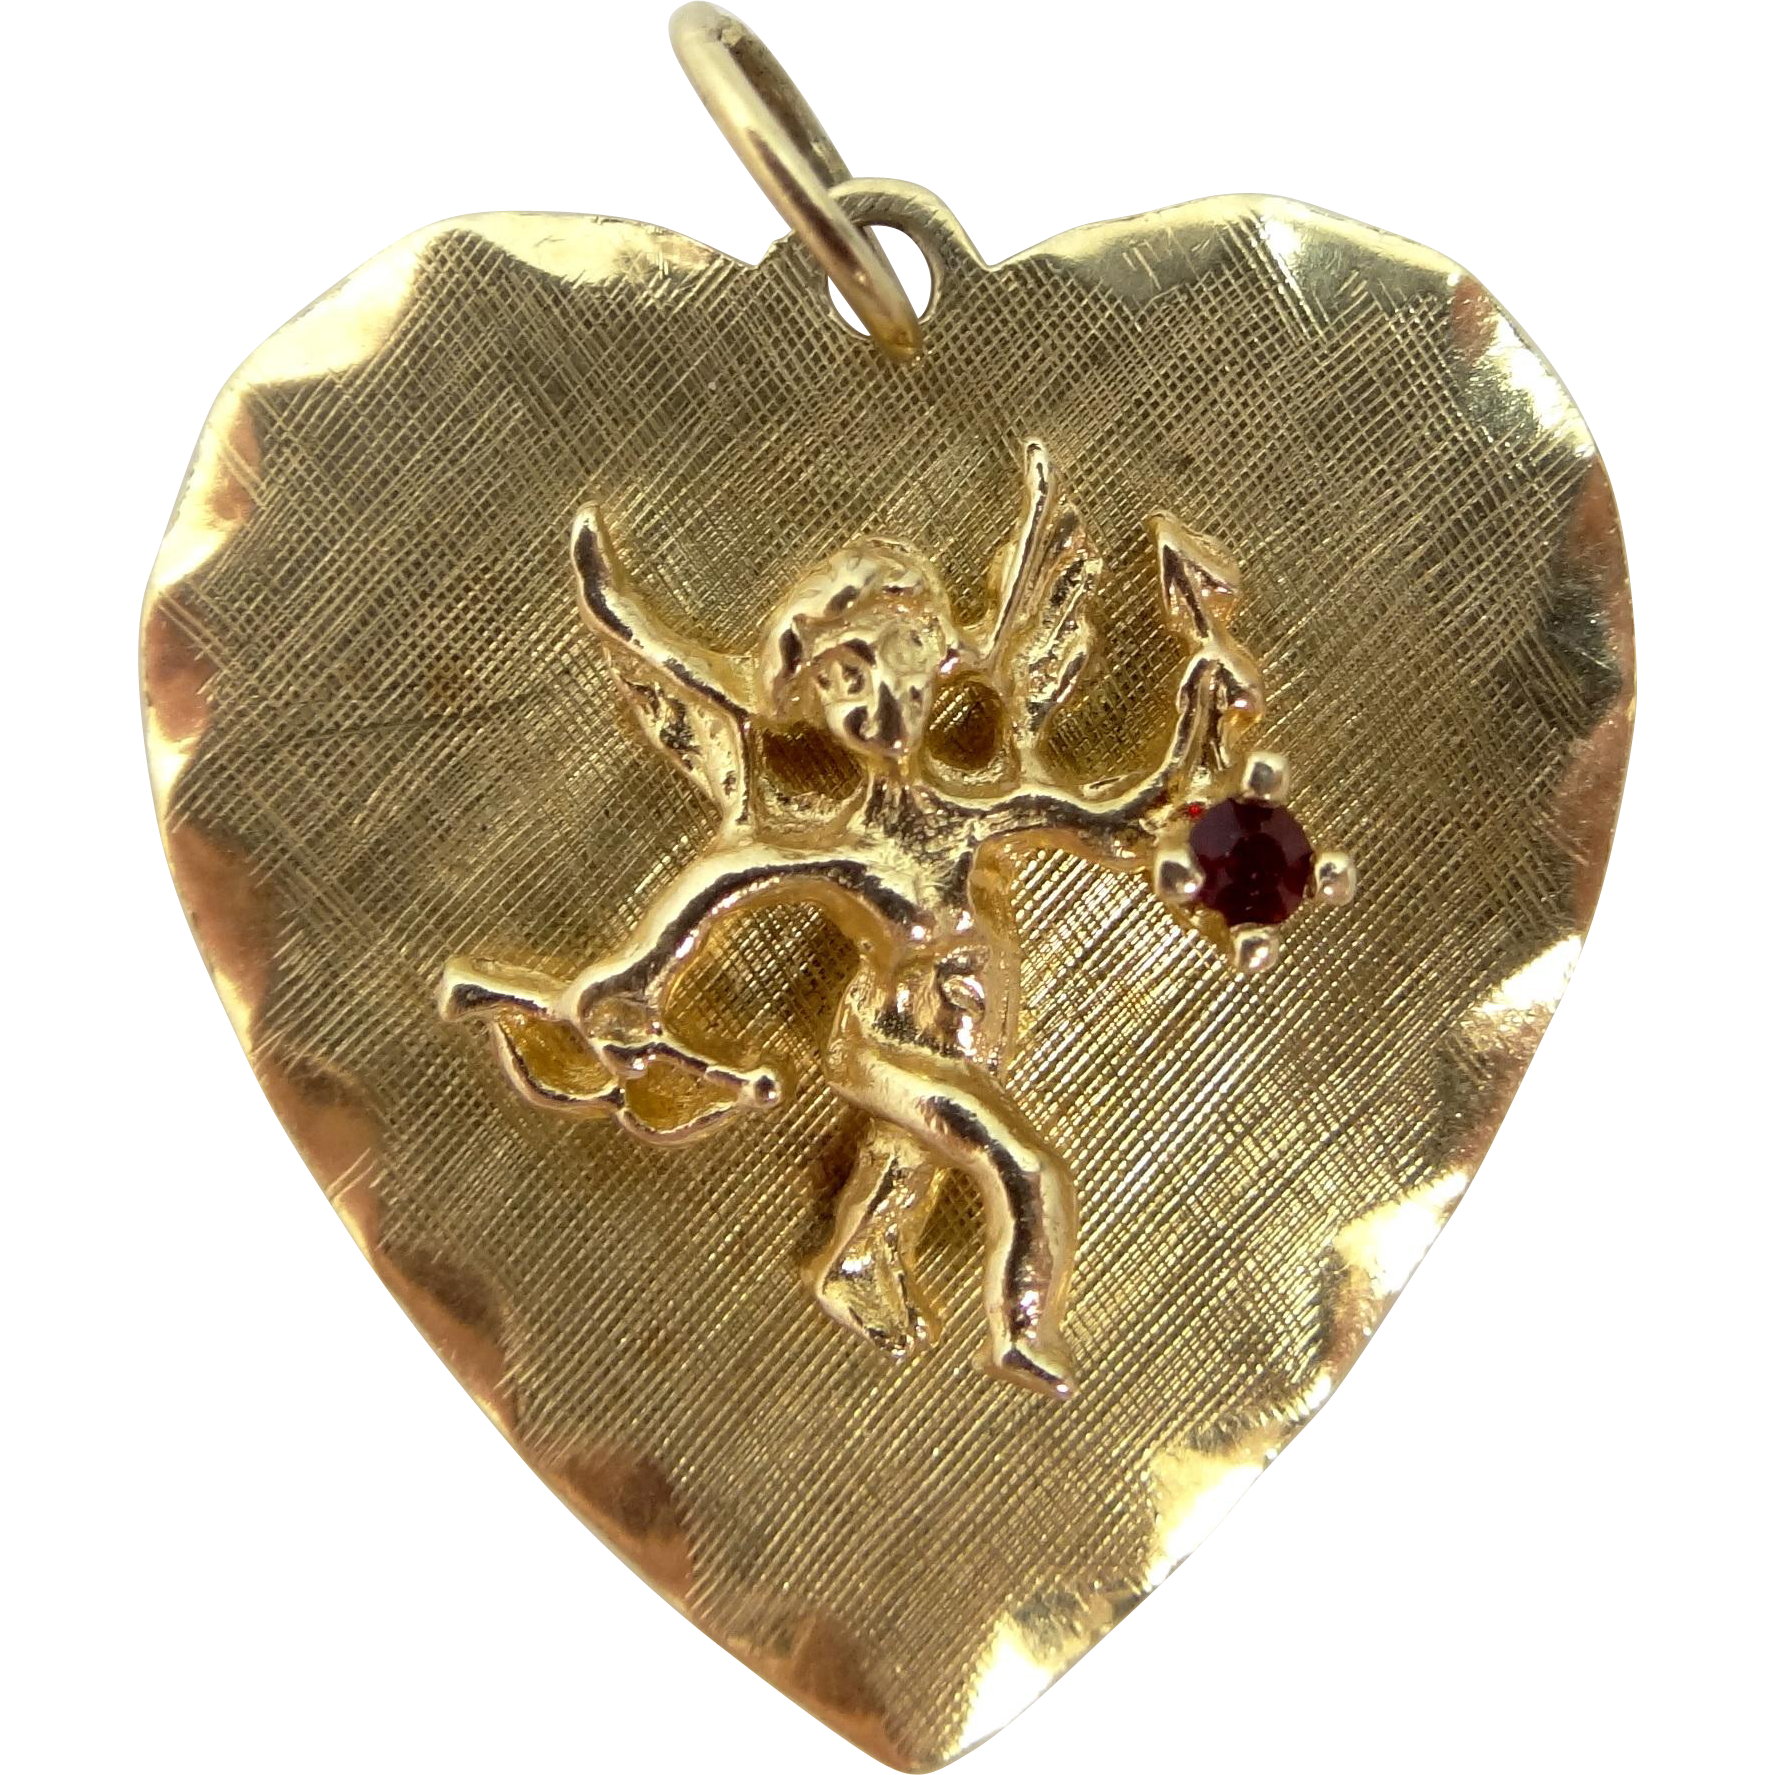 14k Solid Gold Heart Shaped Charm With Cupid & His Bow